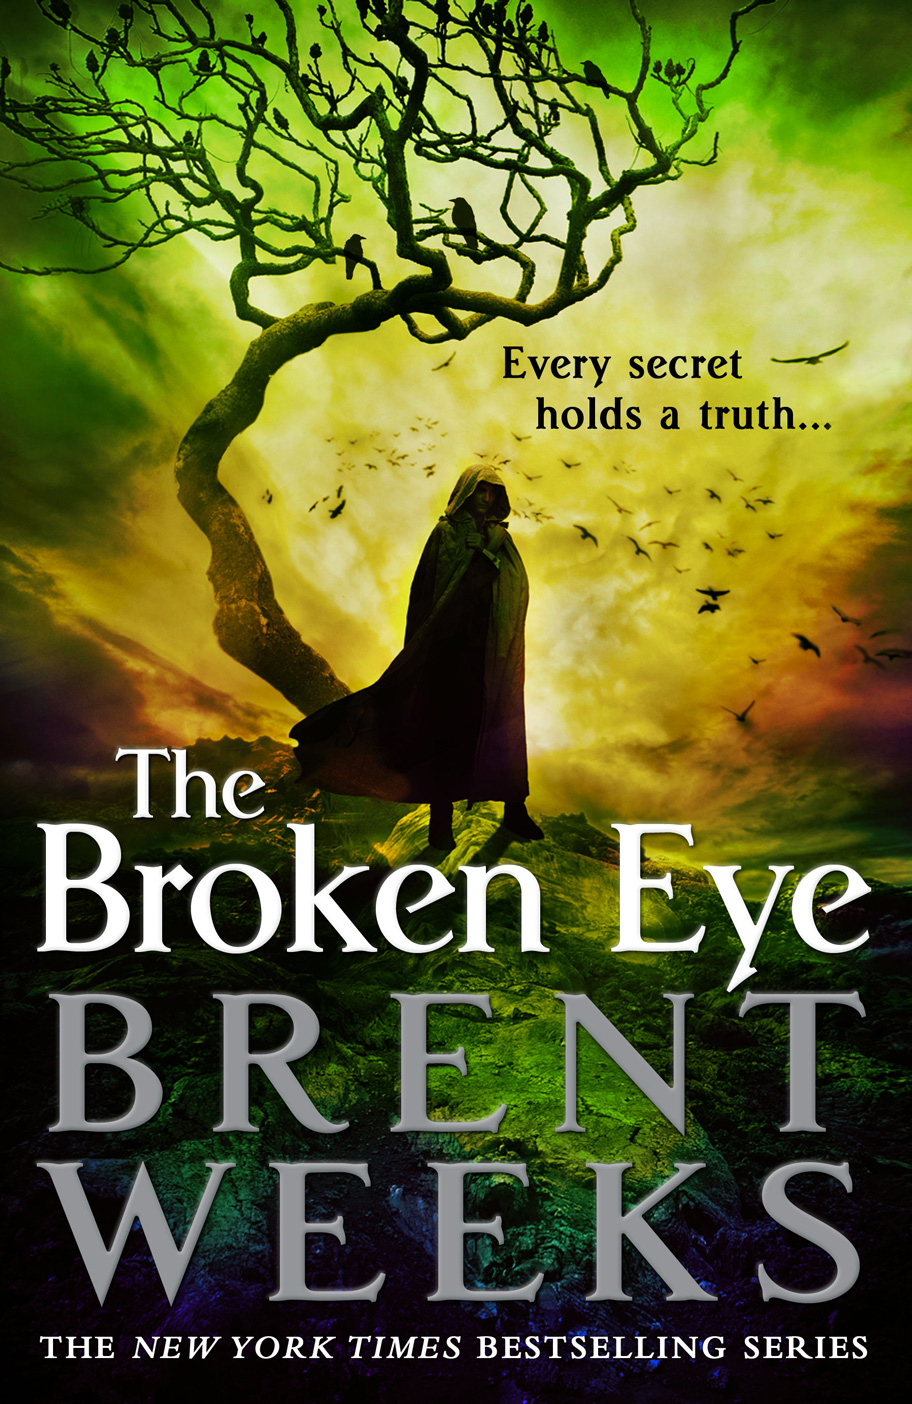 The Broken Eye by Brent Weeks